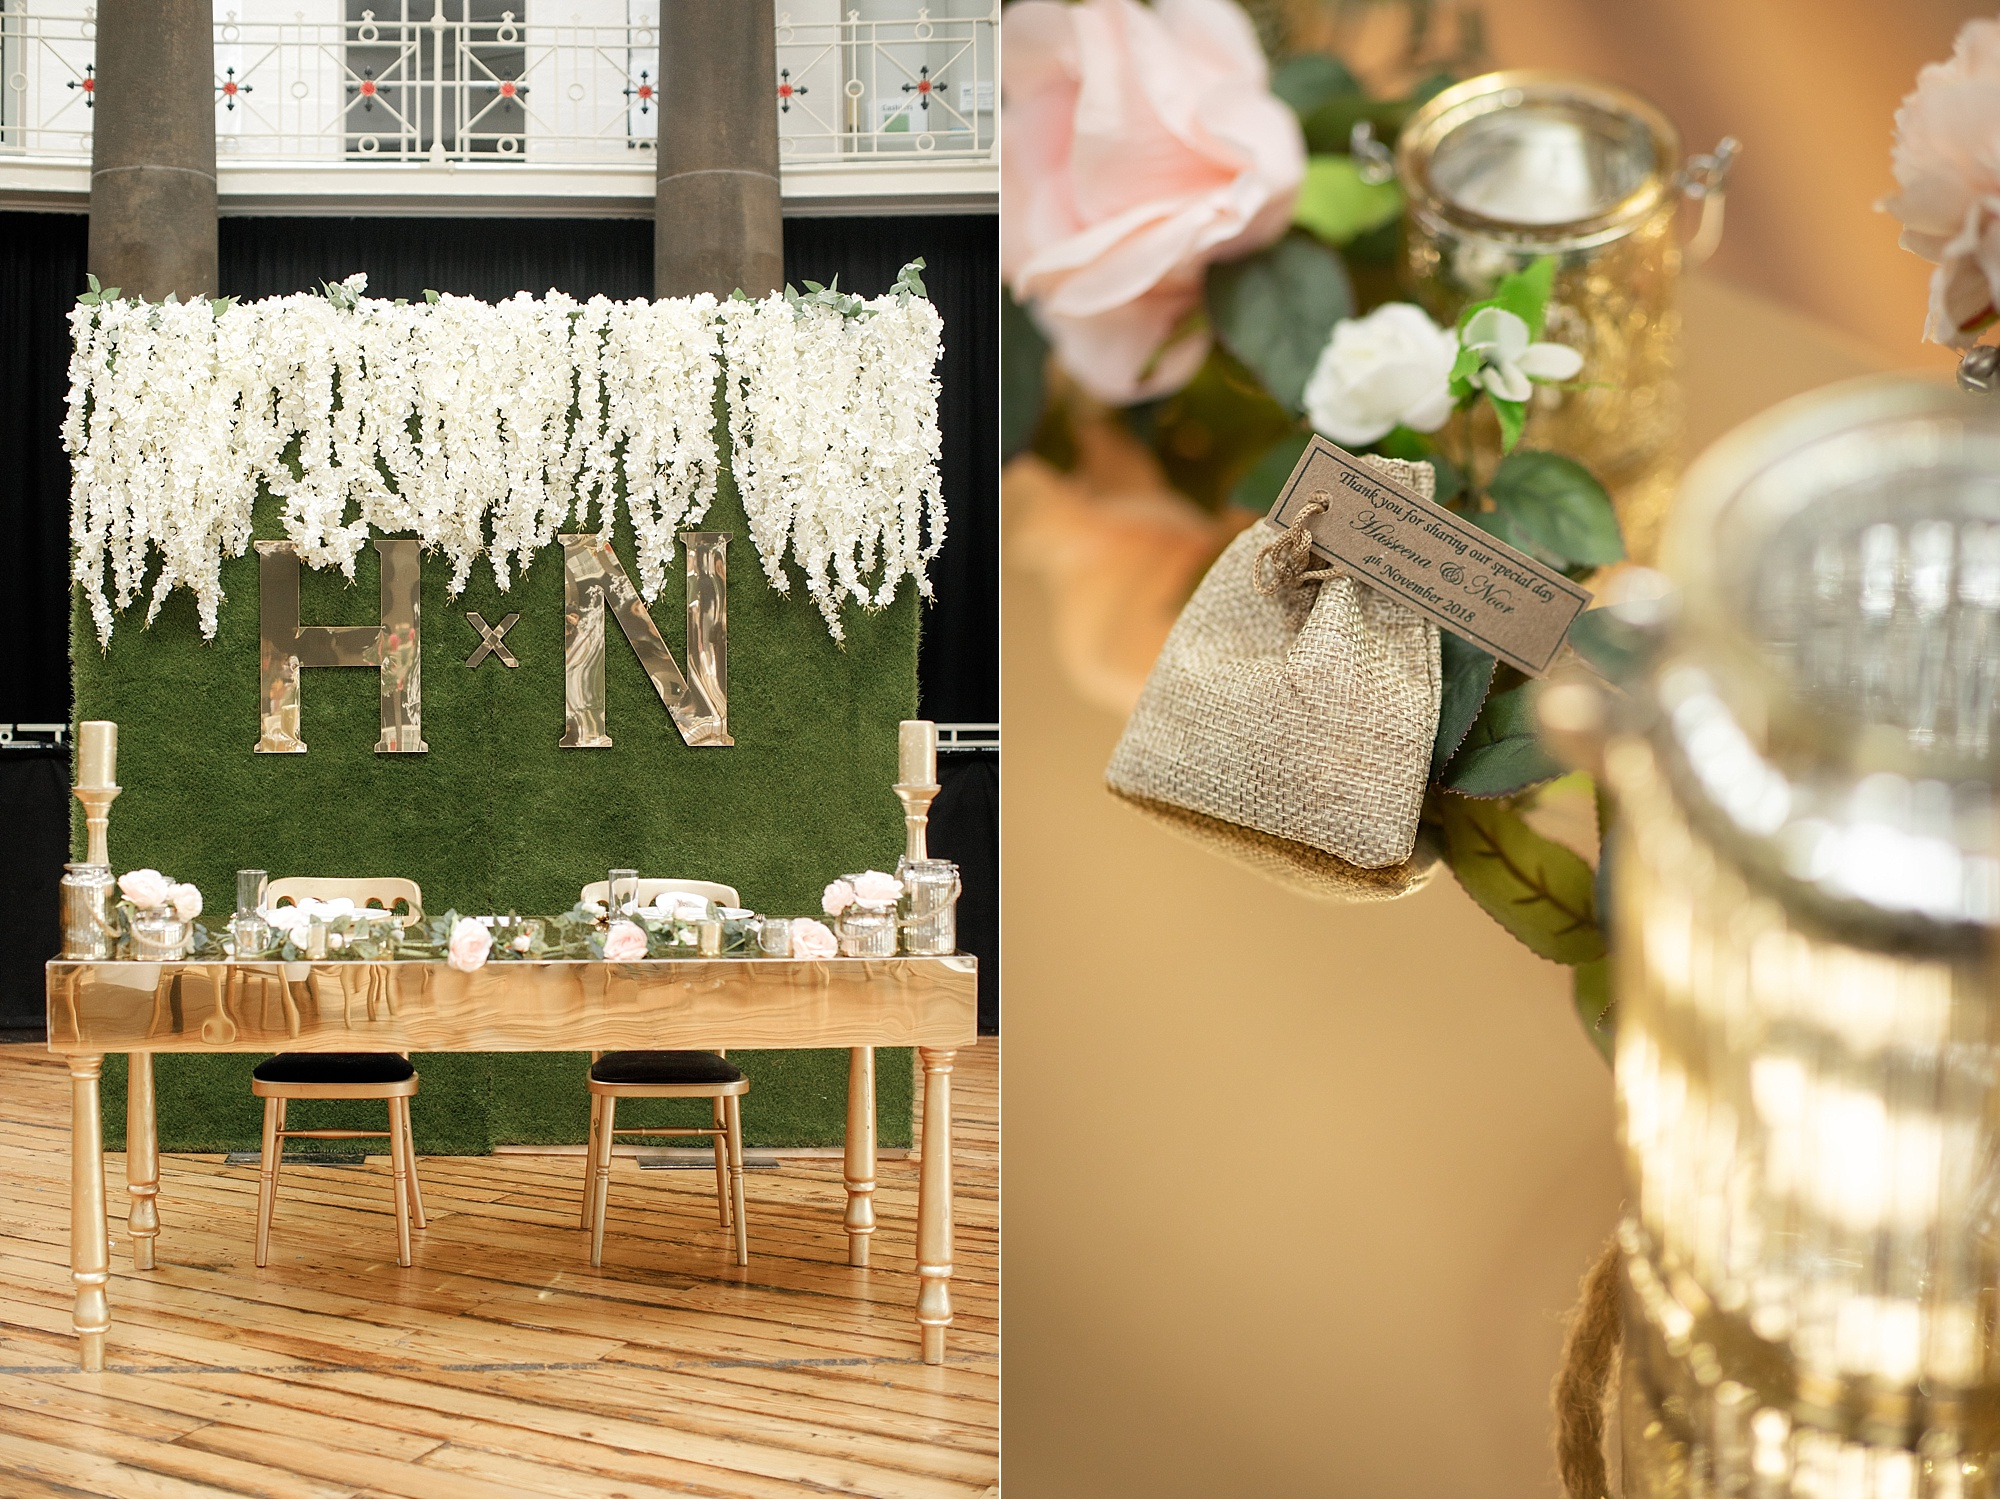 Wedding decor details photography at Devonshire Dome